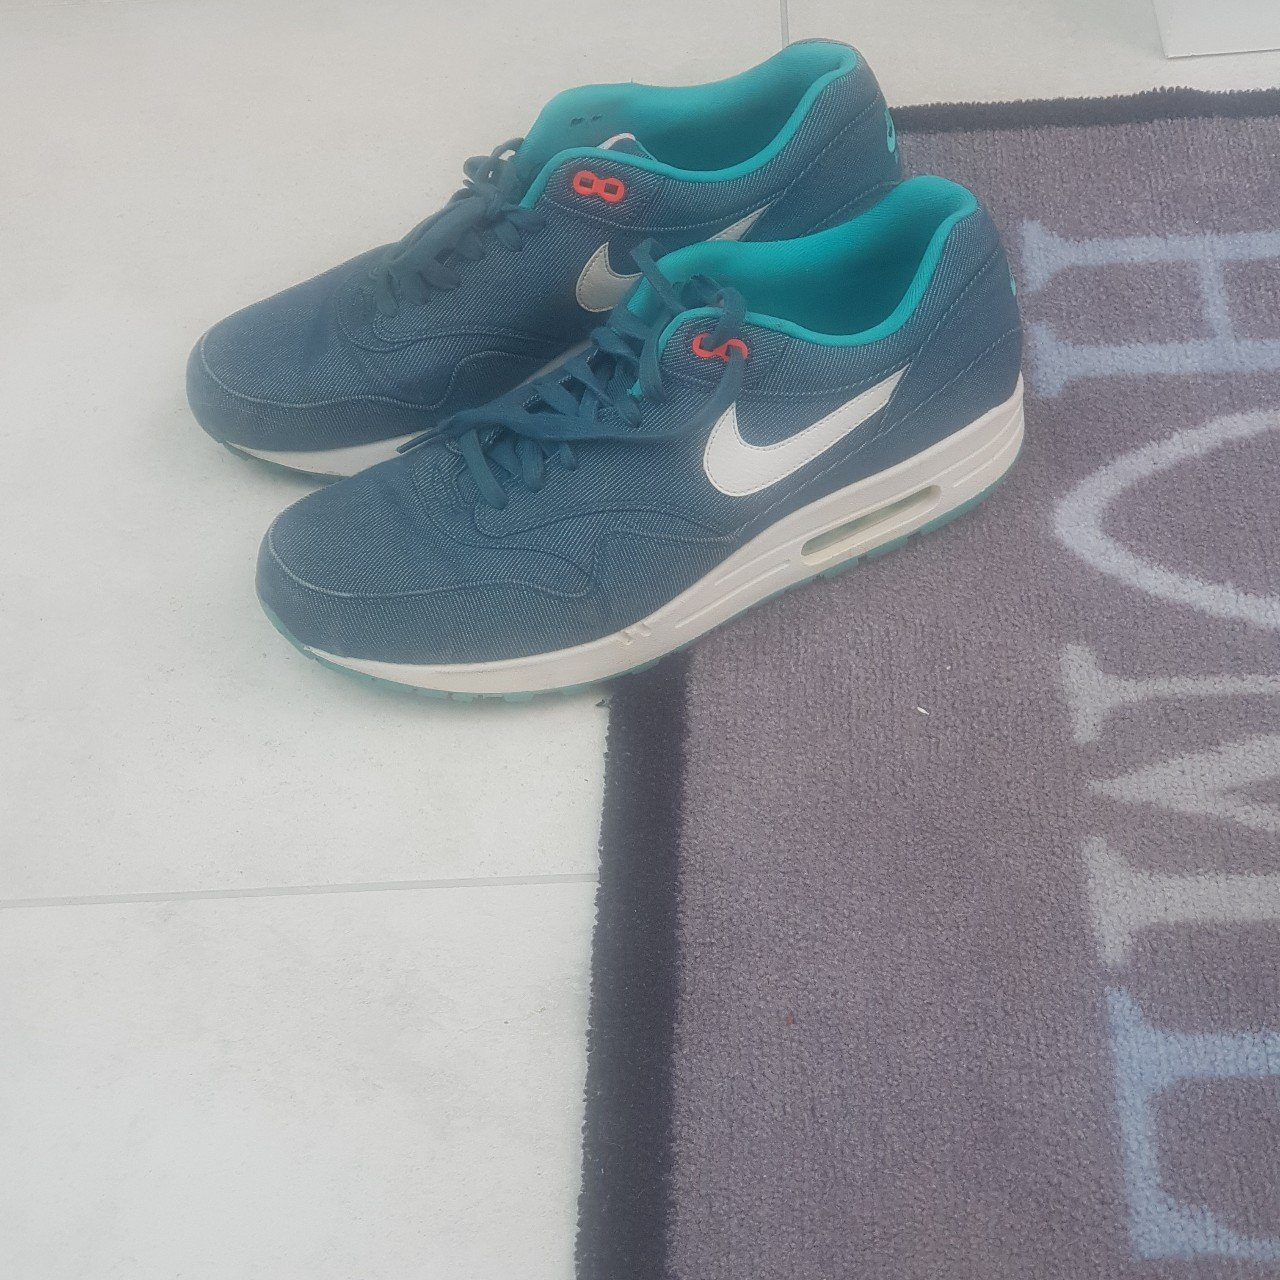 competitive price 604c6 96d61  bigspadge. 2 days ago. Doncaster, GB. Nike Air Max 1 Denim Midnight  Turquoise